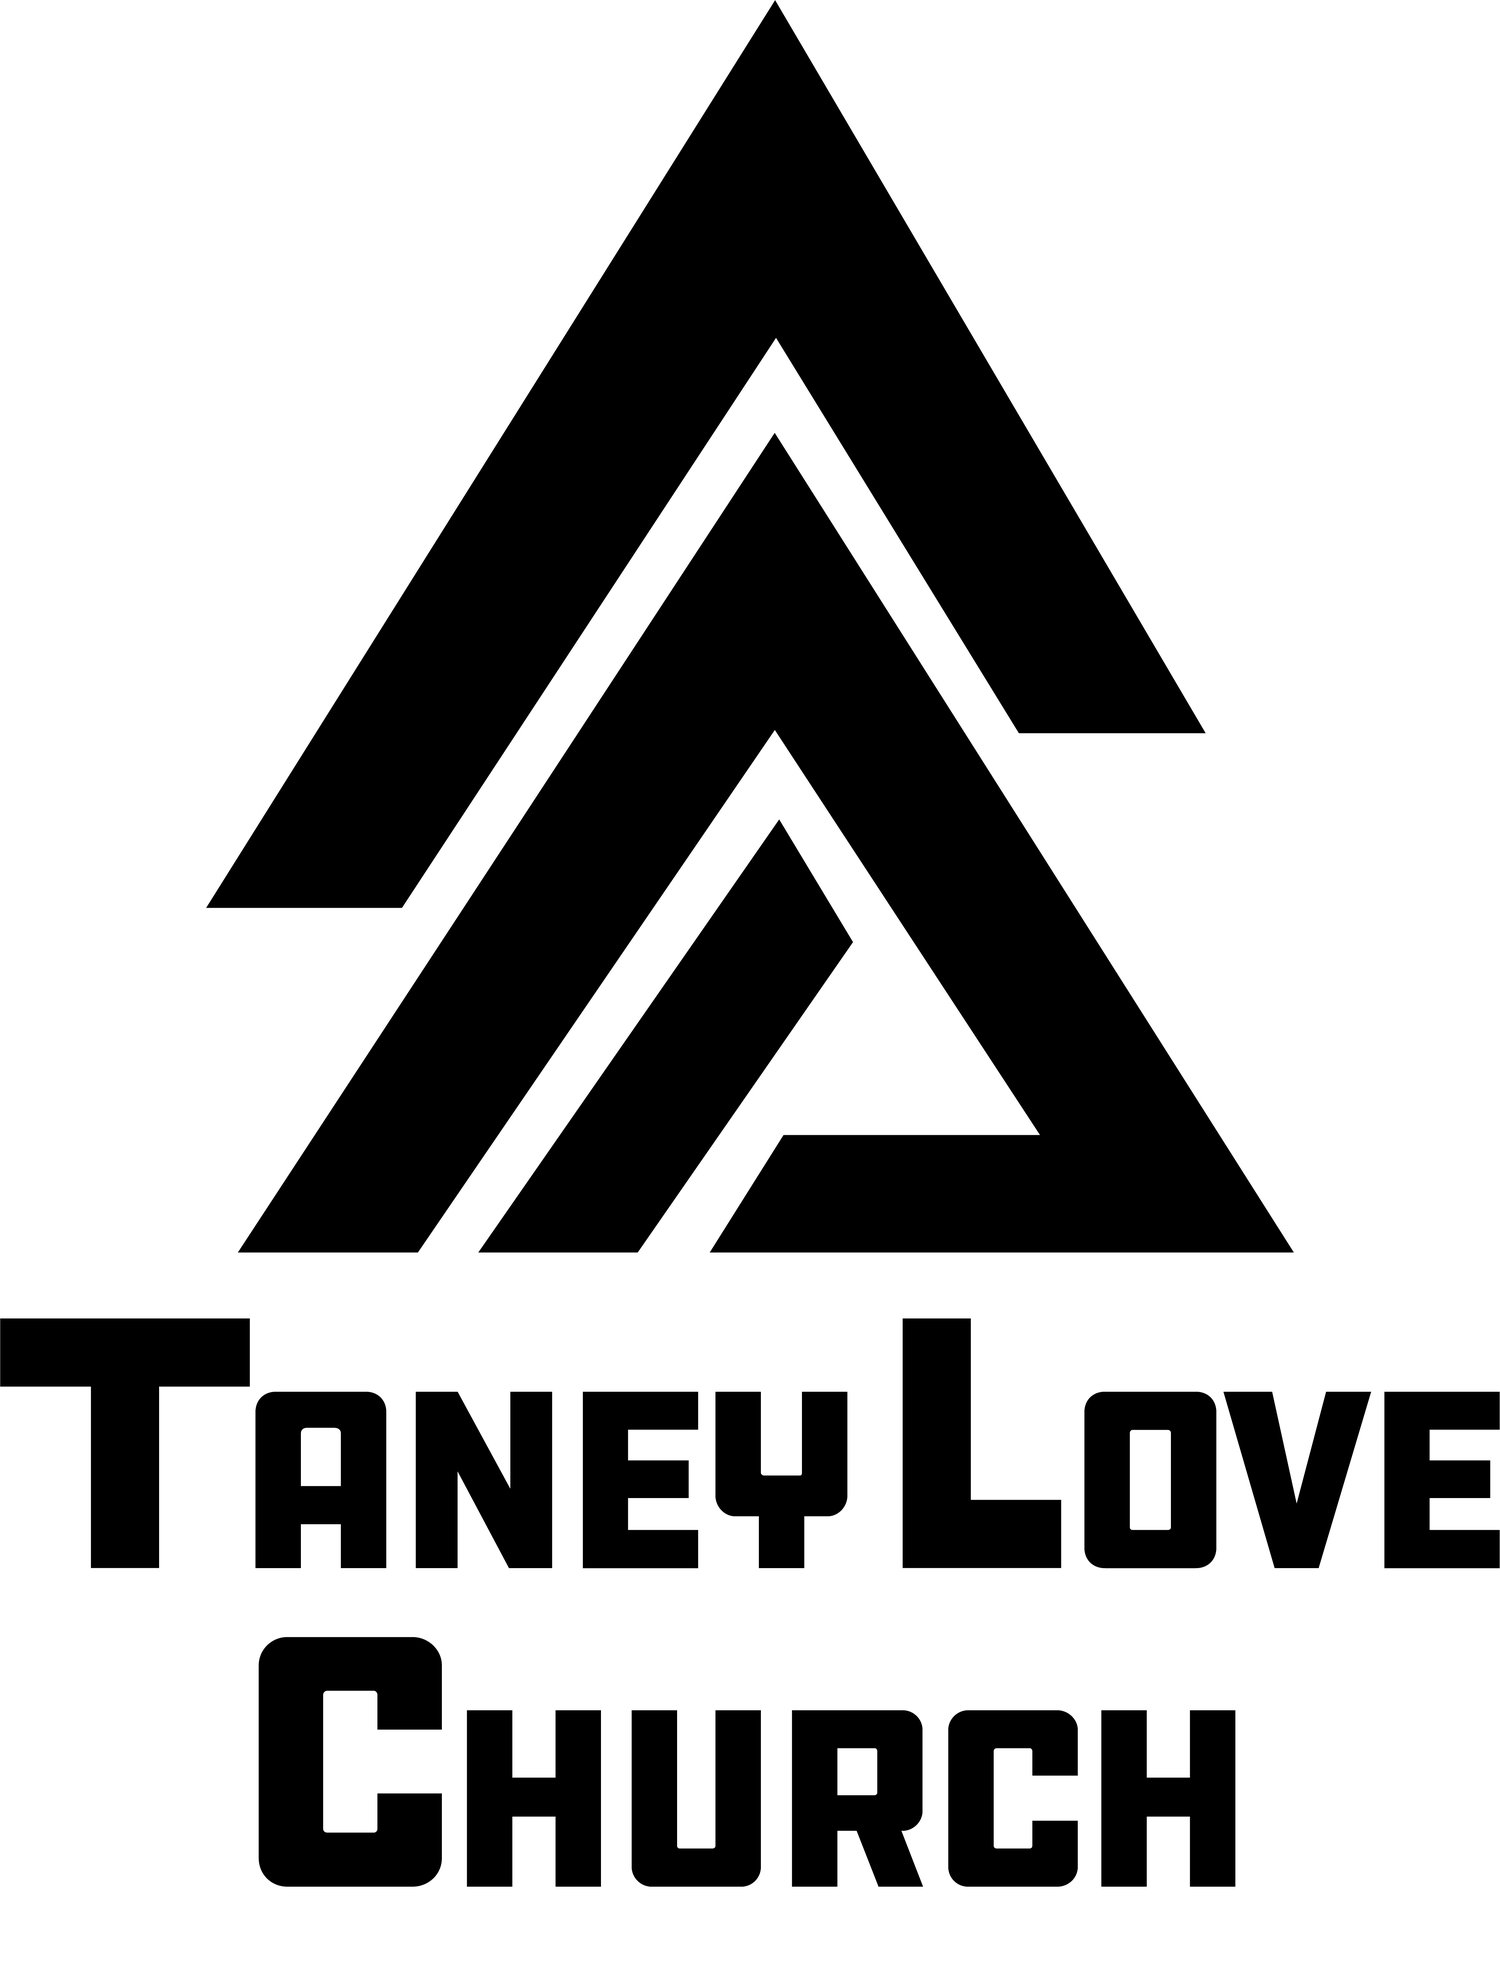 Taney Love Church